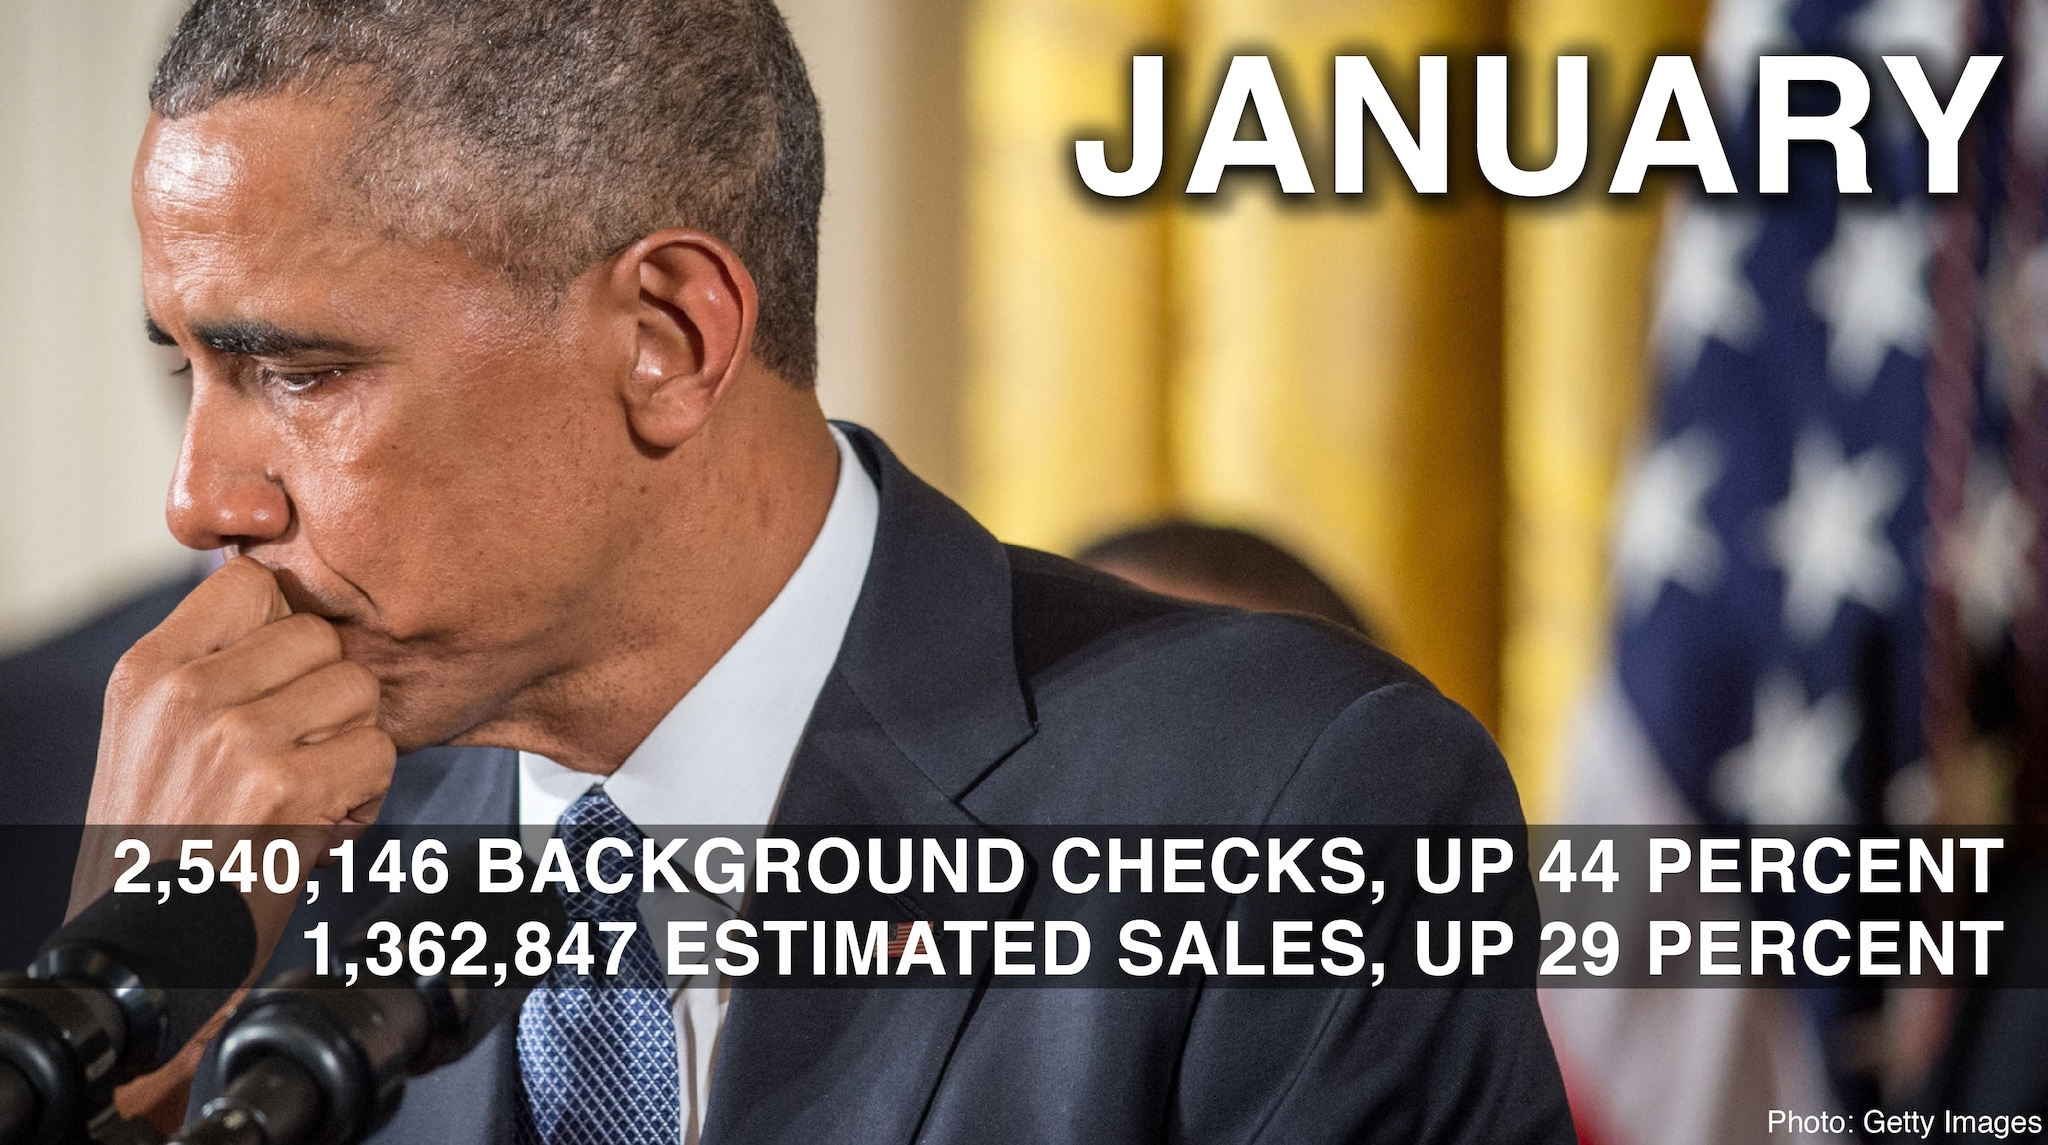 january 2016 background check stats